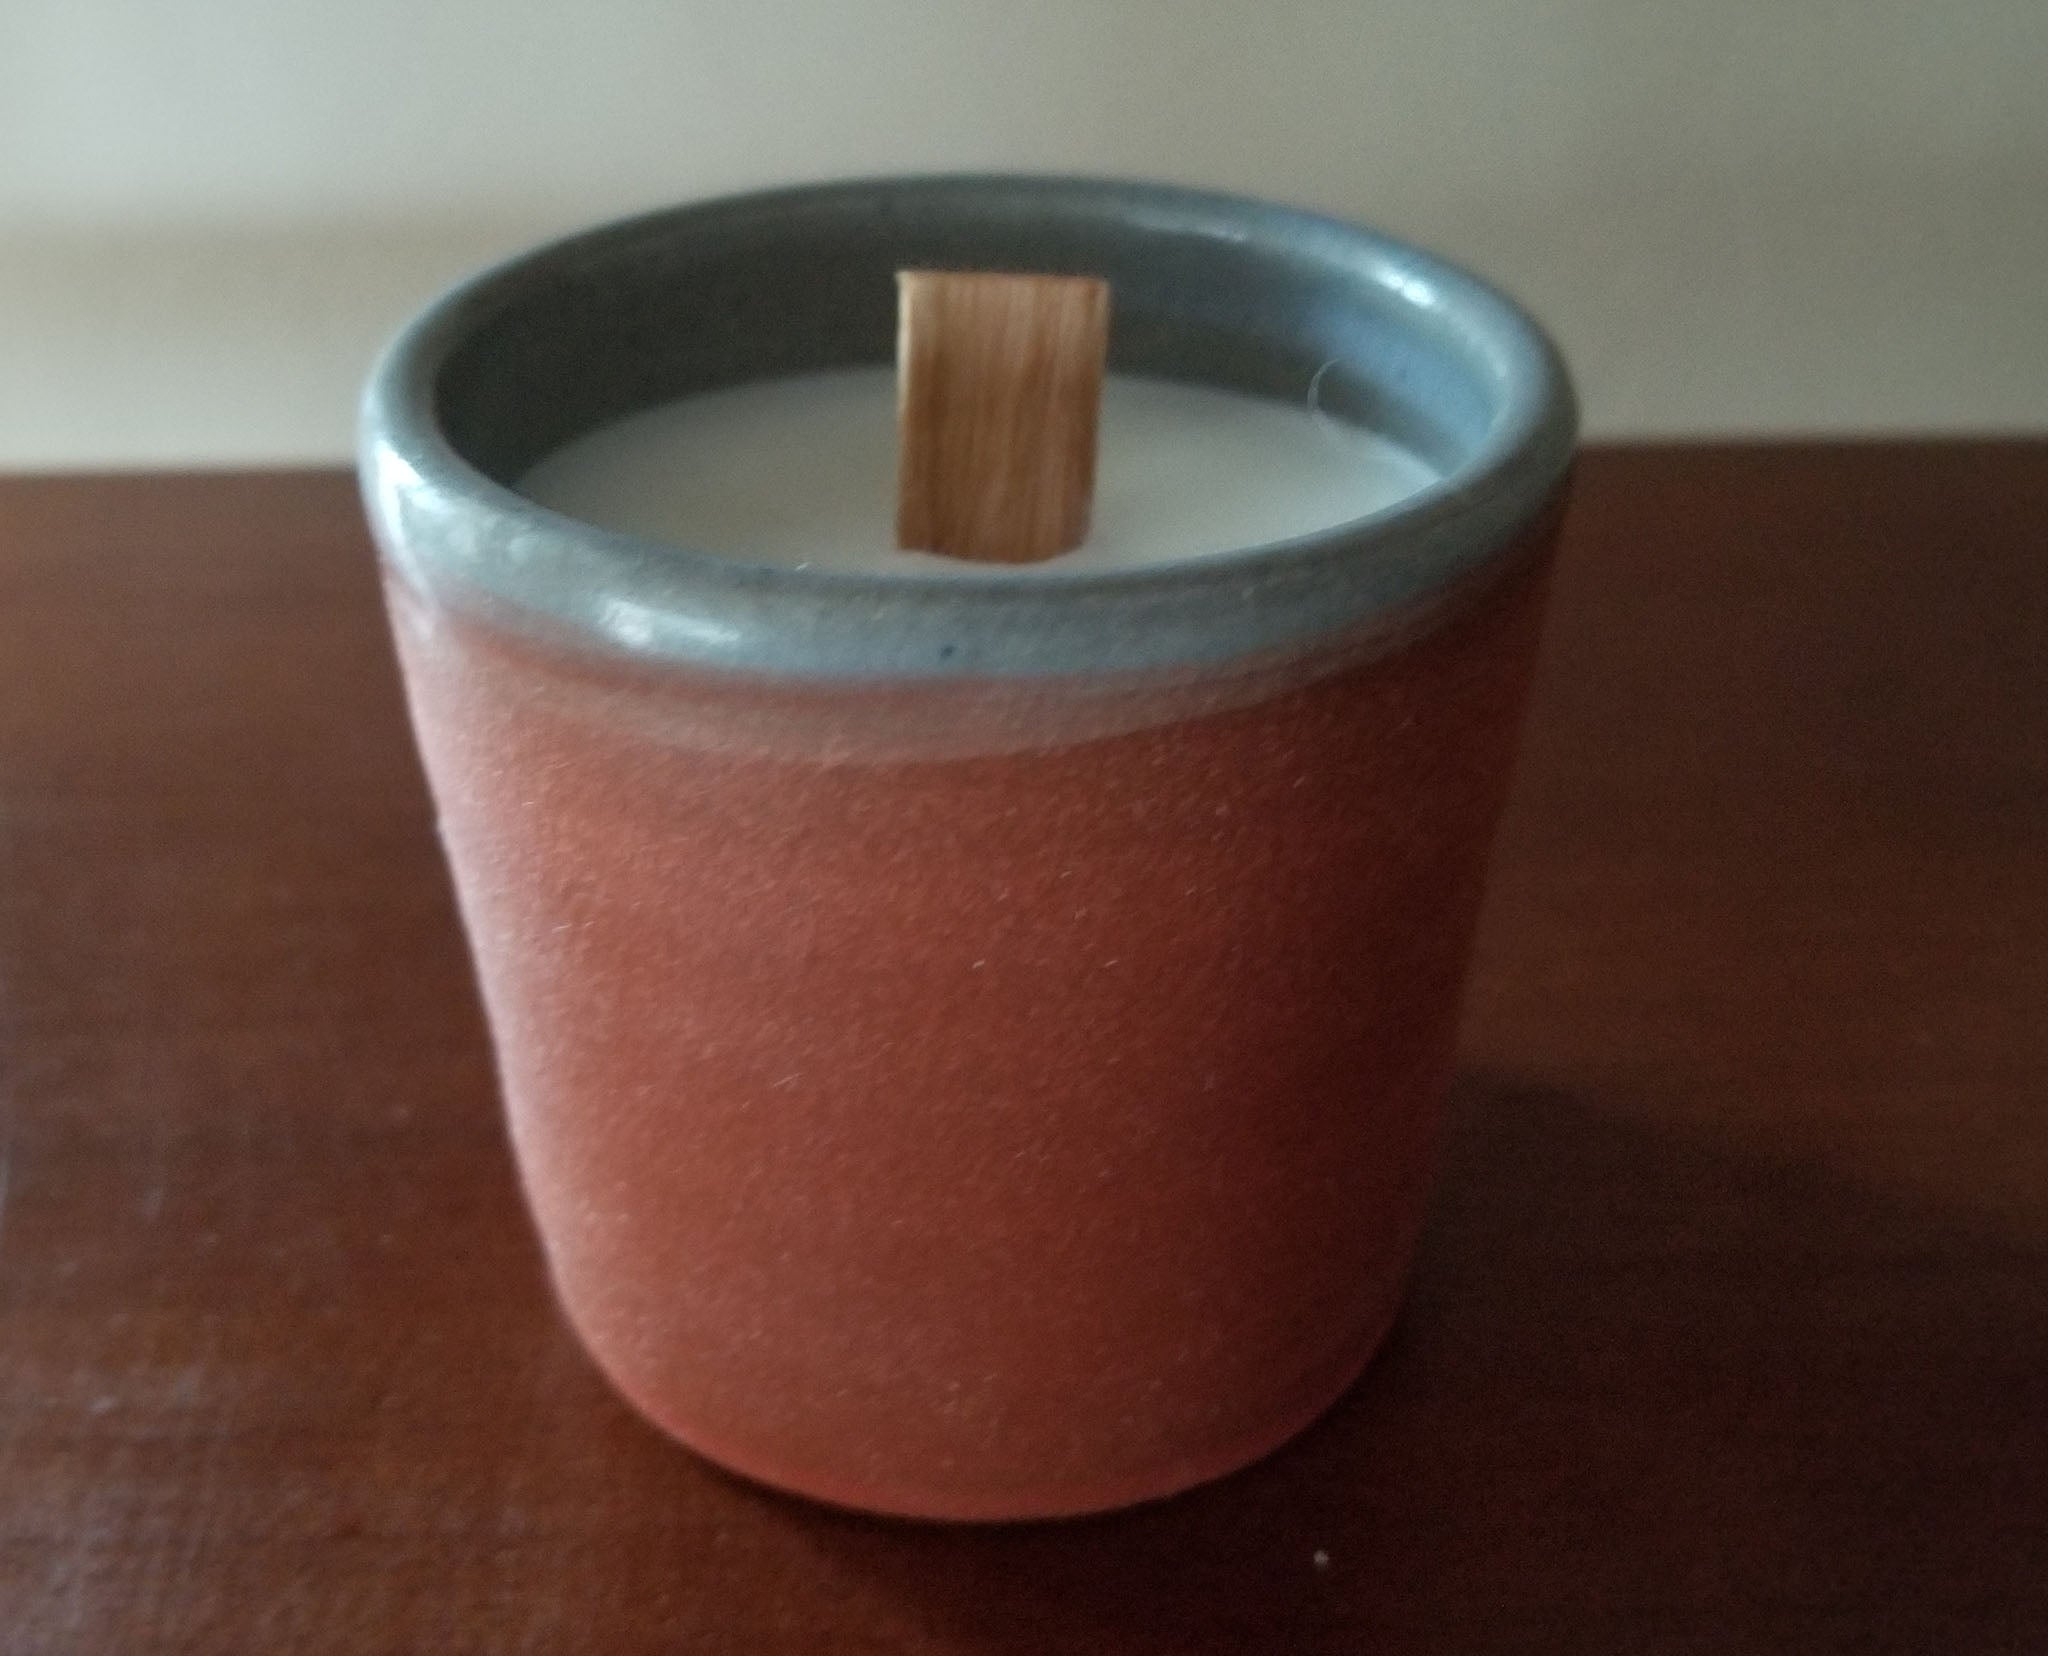 Beeswax candle poured in hand-thrown pottery by Jeremiah Houck.